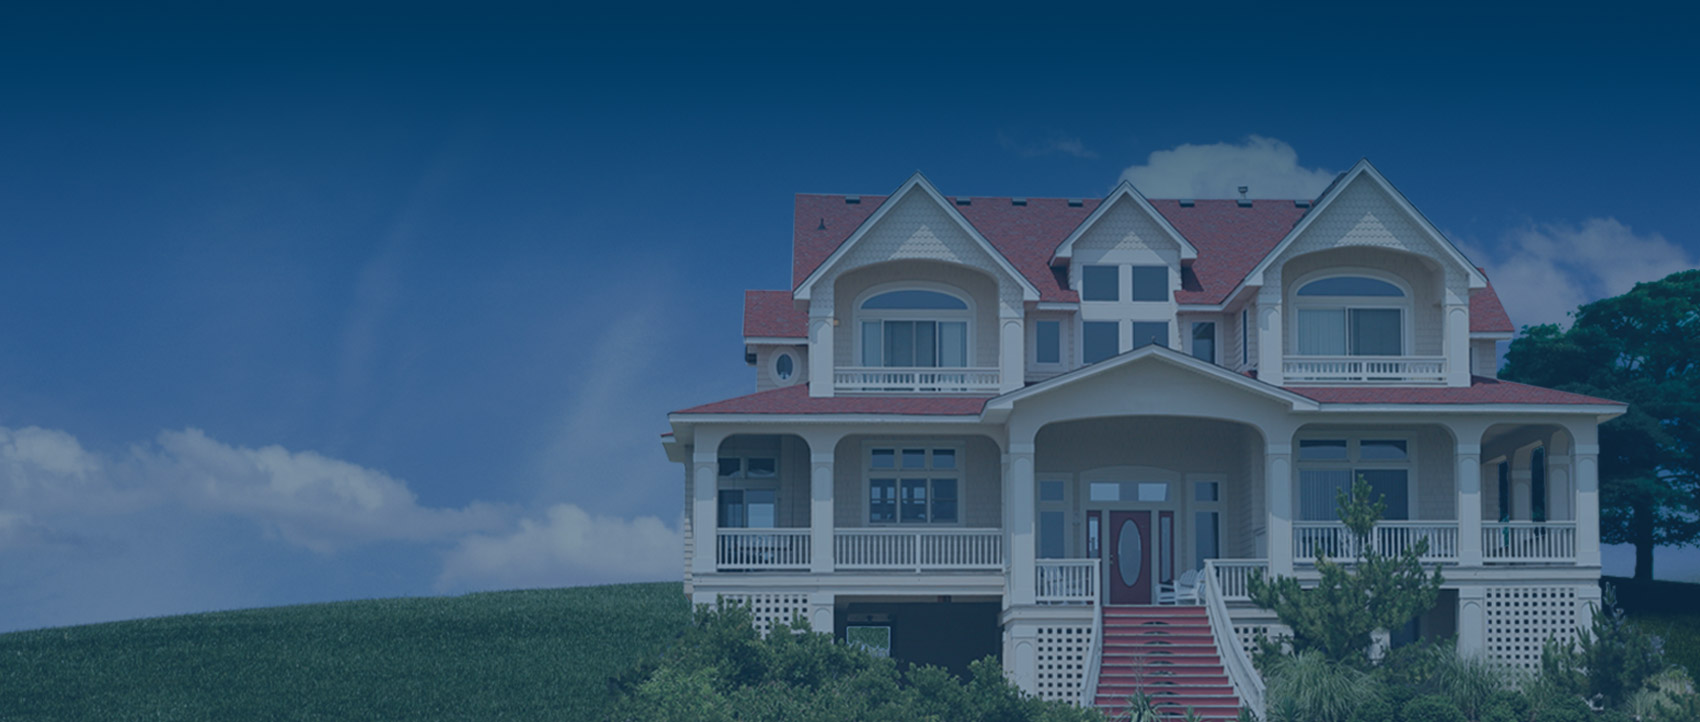 Certified Pre-Owned Home Inspections in San Antonio